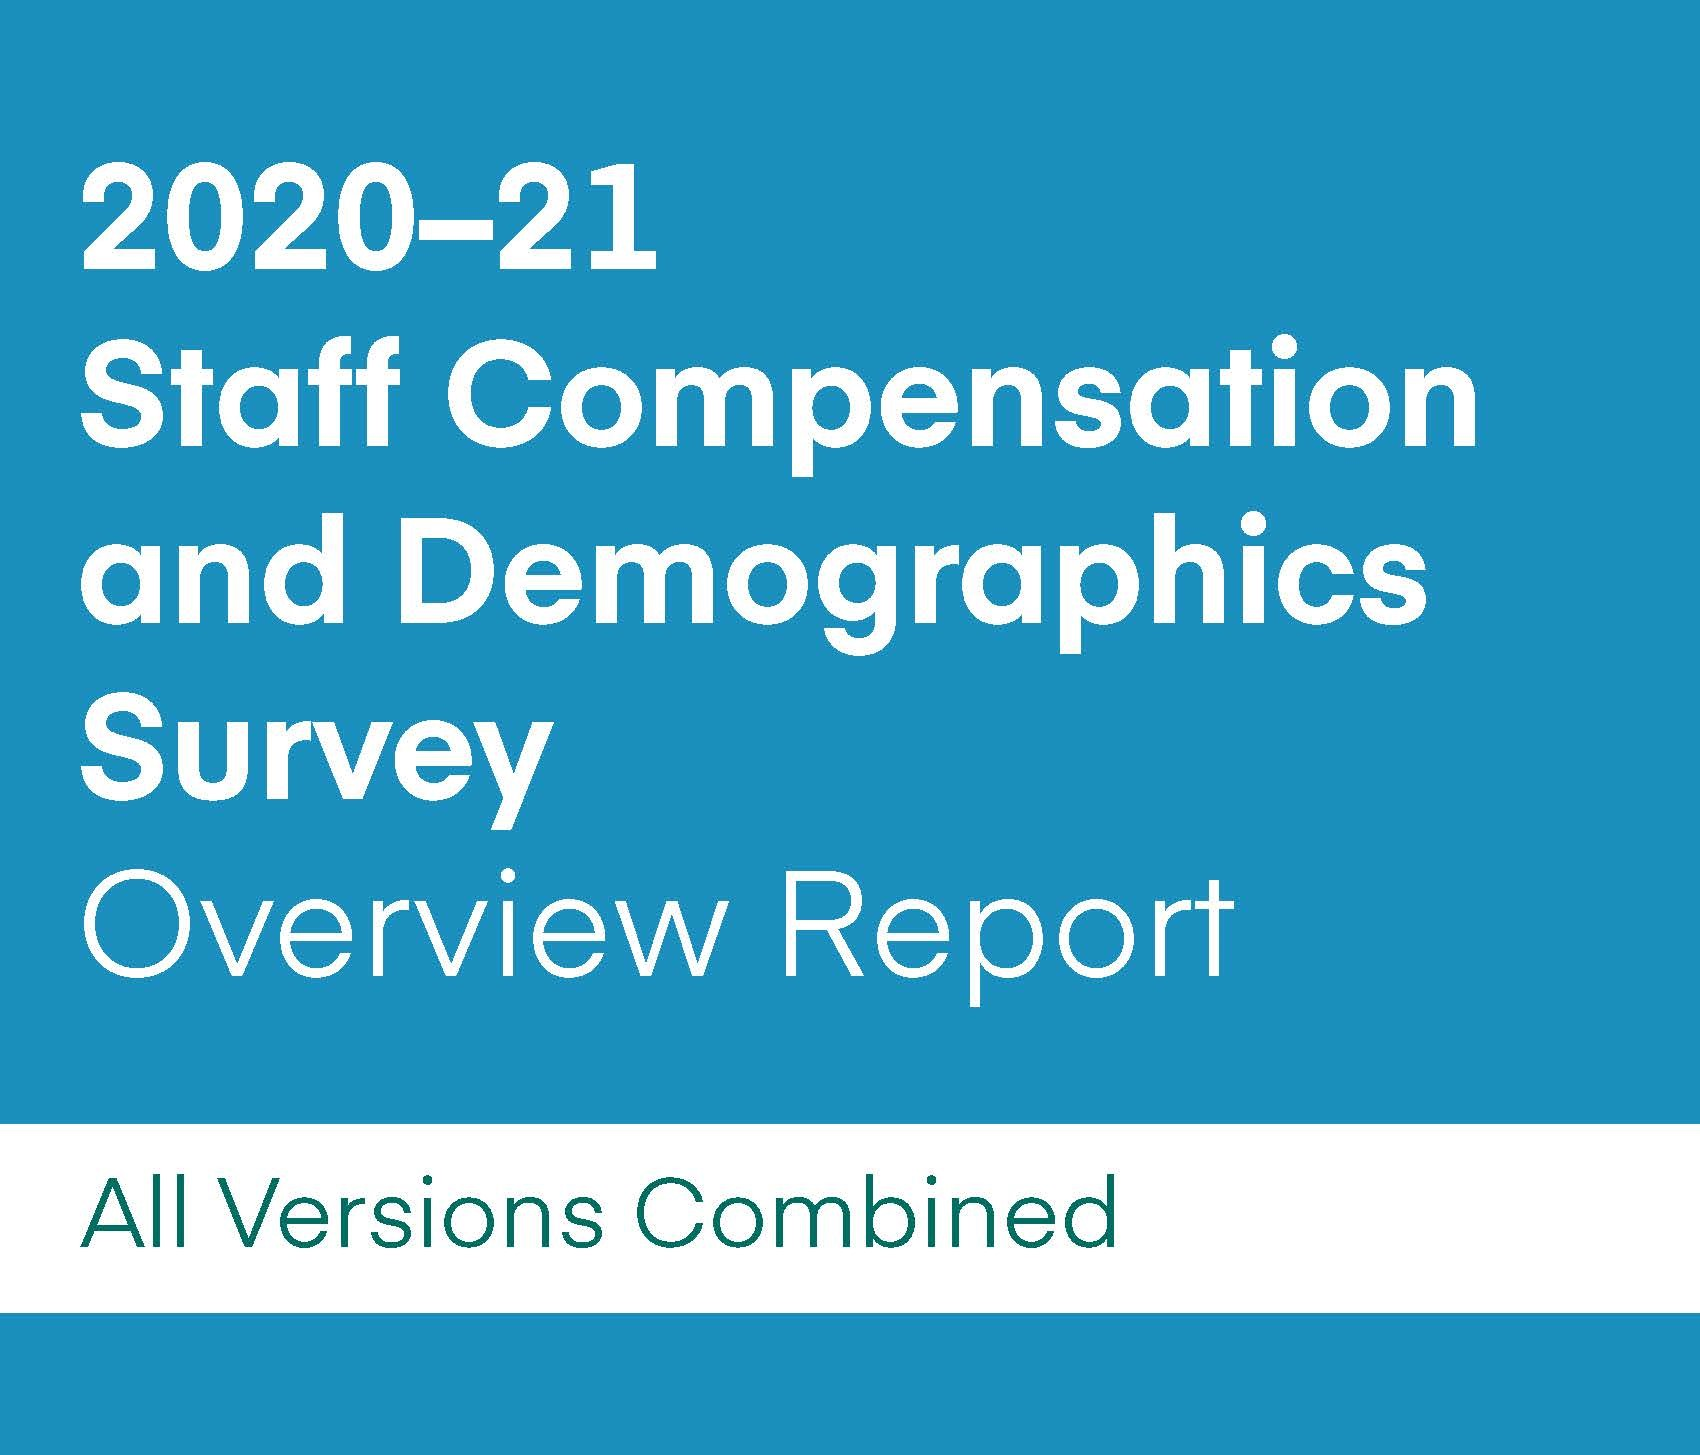 2020-21 SCDS Overview Report-All Versions Combined (Download)